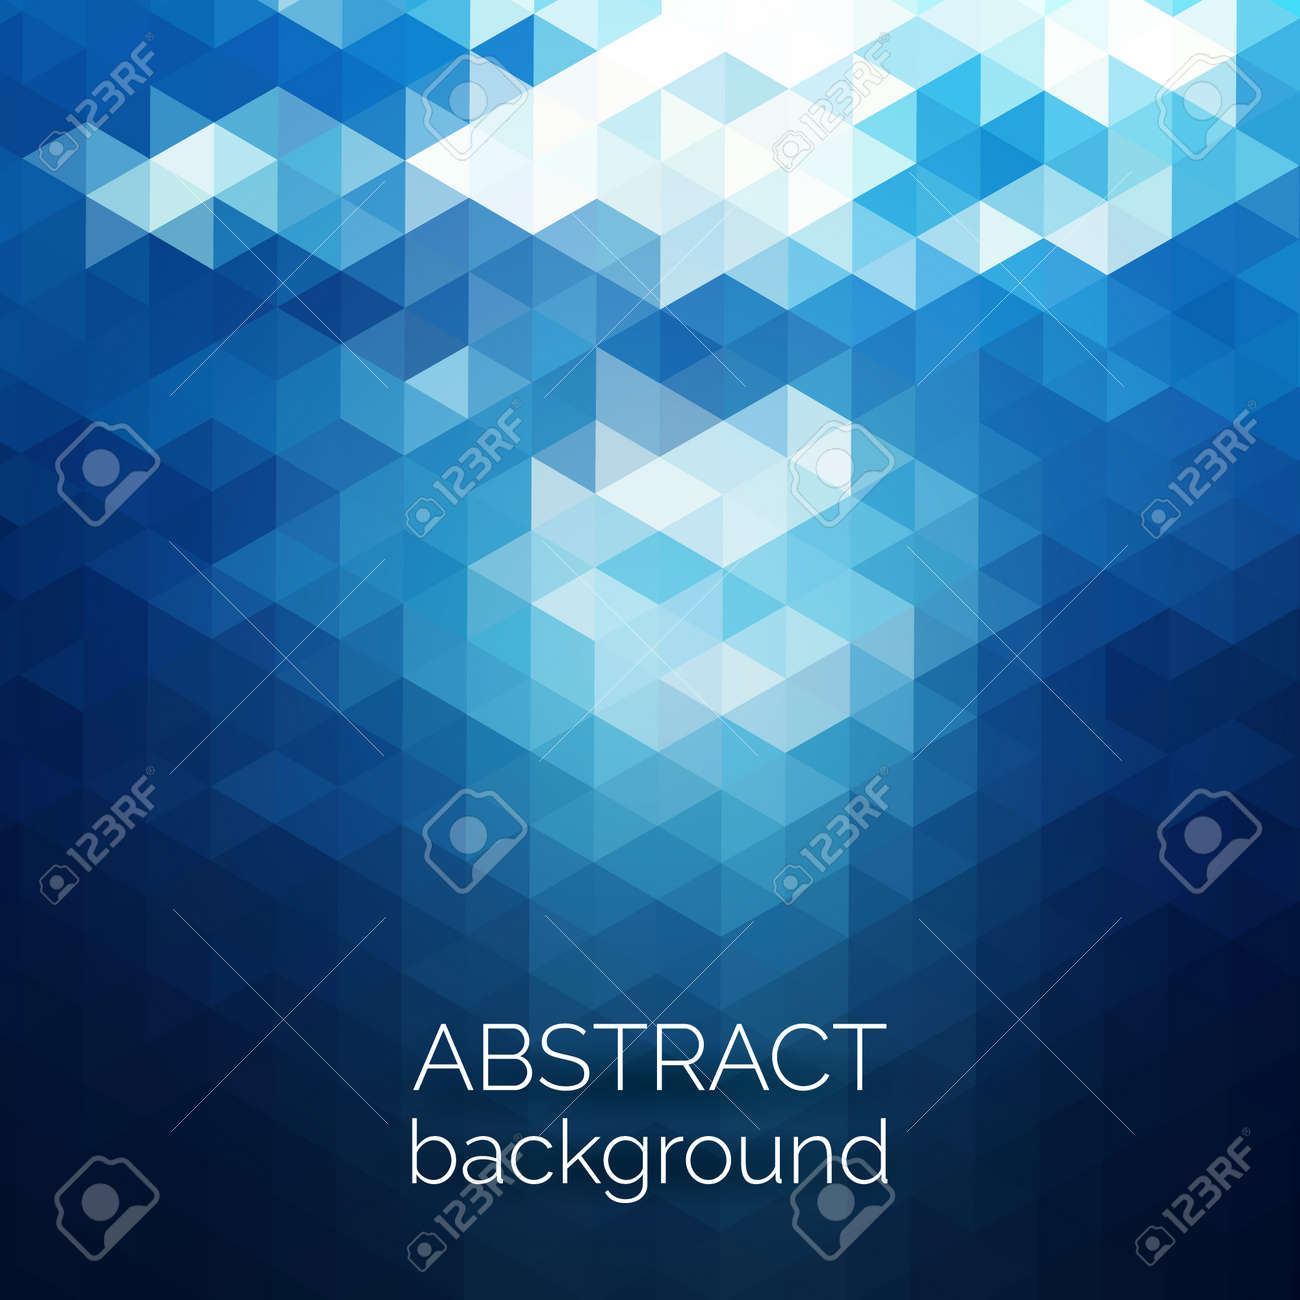 Abstract triangles pattern background. Blue water geometric background. Vector illustration - 41613391